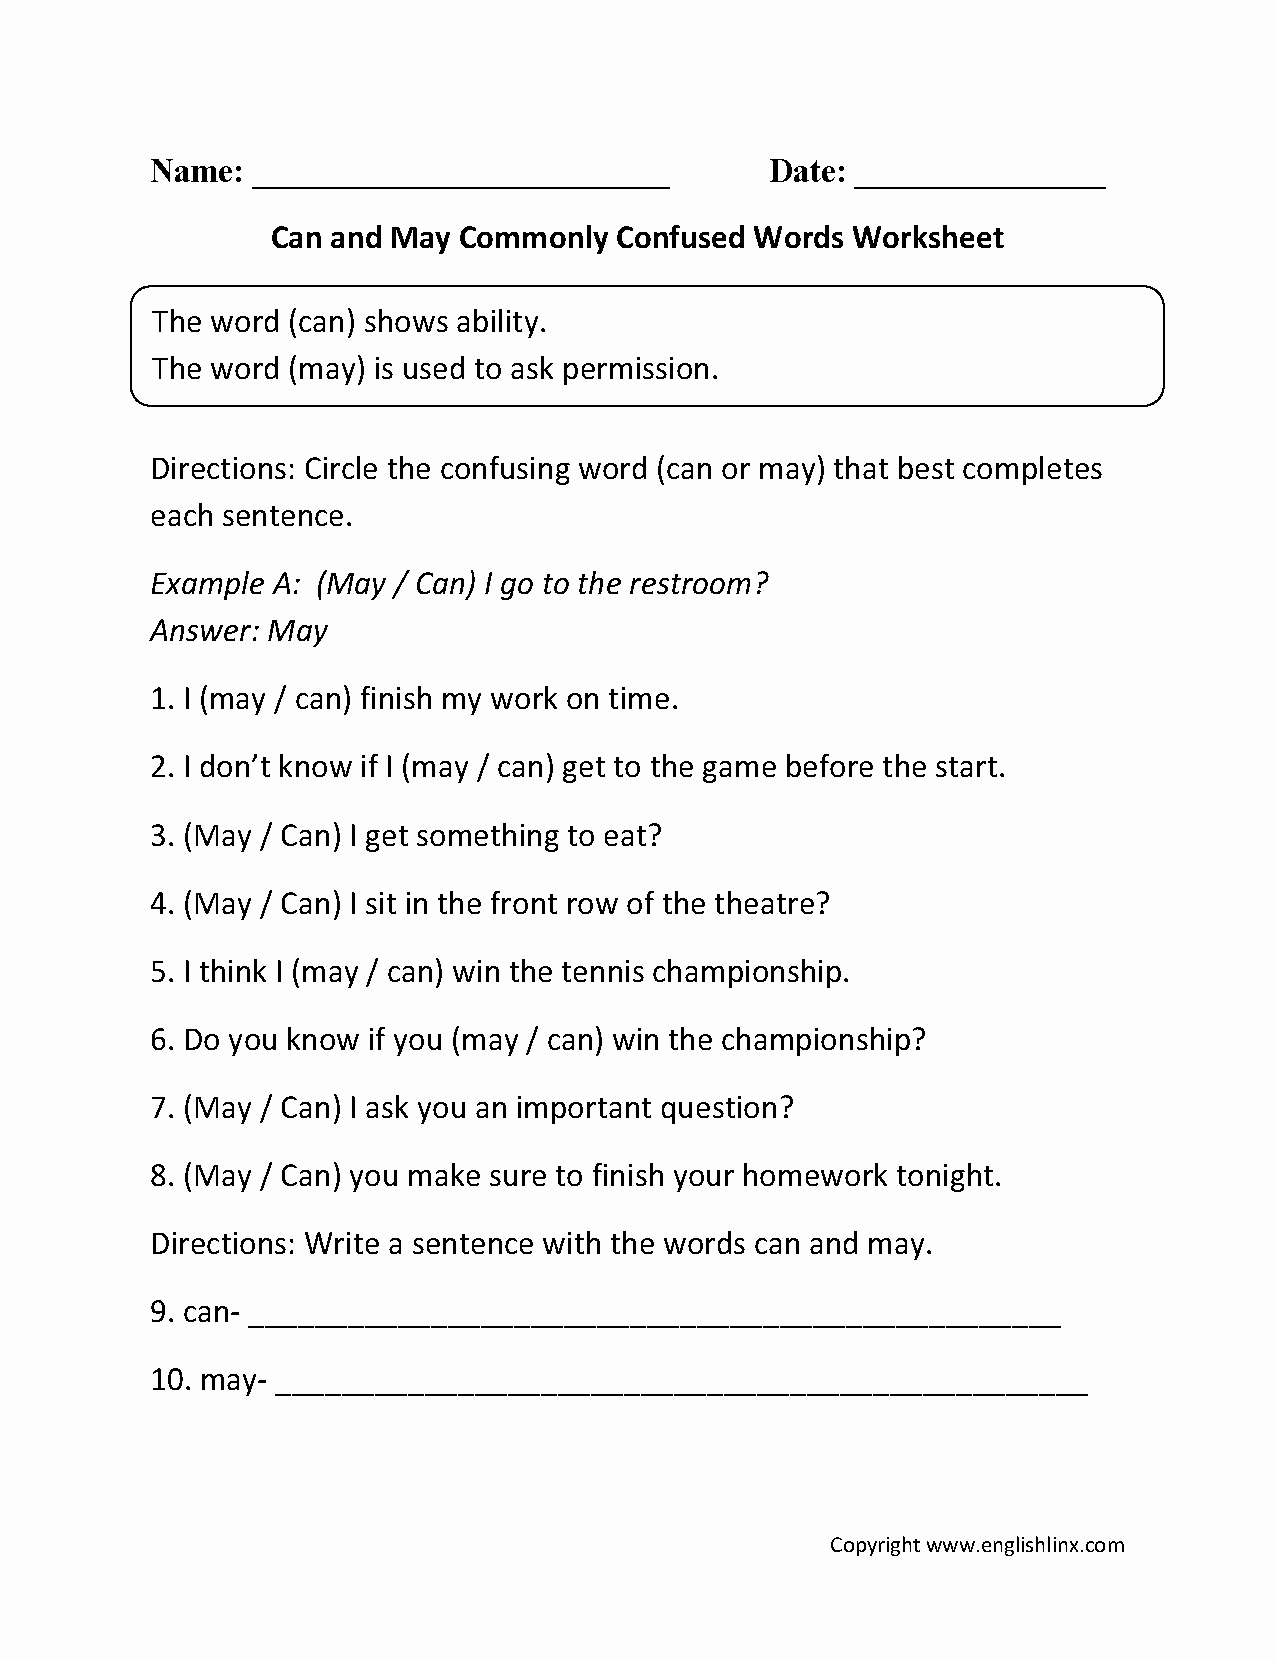 Commonly Confused Words Worksheet Awesome Shurley Grammar Worksheets